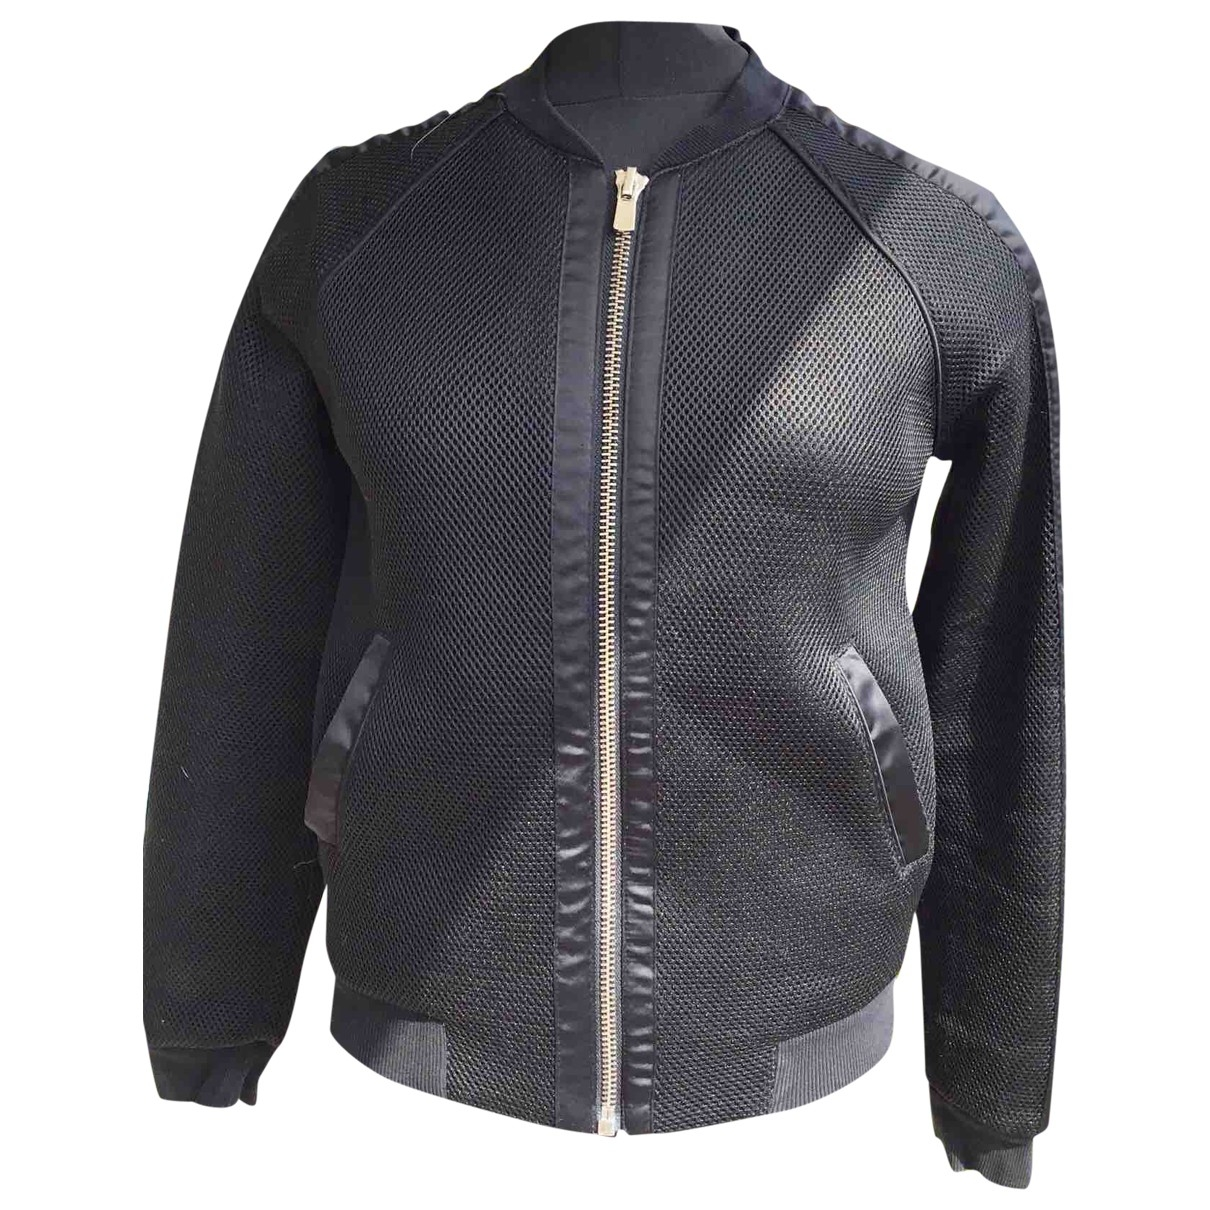 Maje \N Black Leather jacket for Women 38 FR